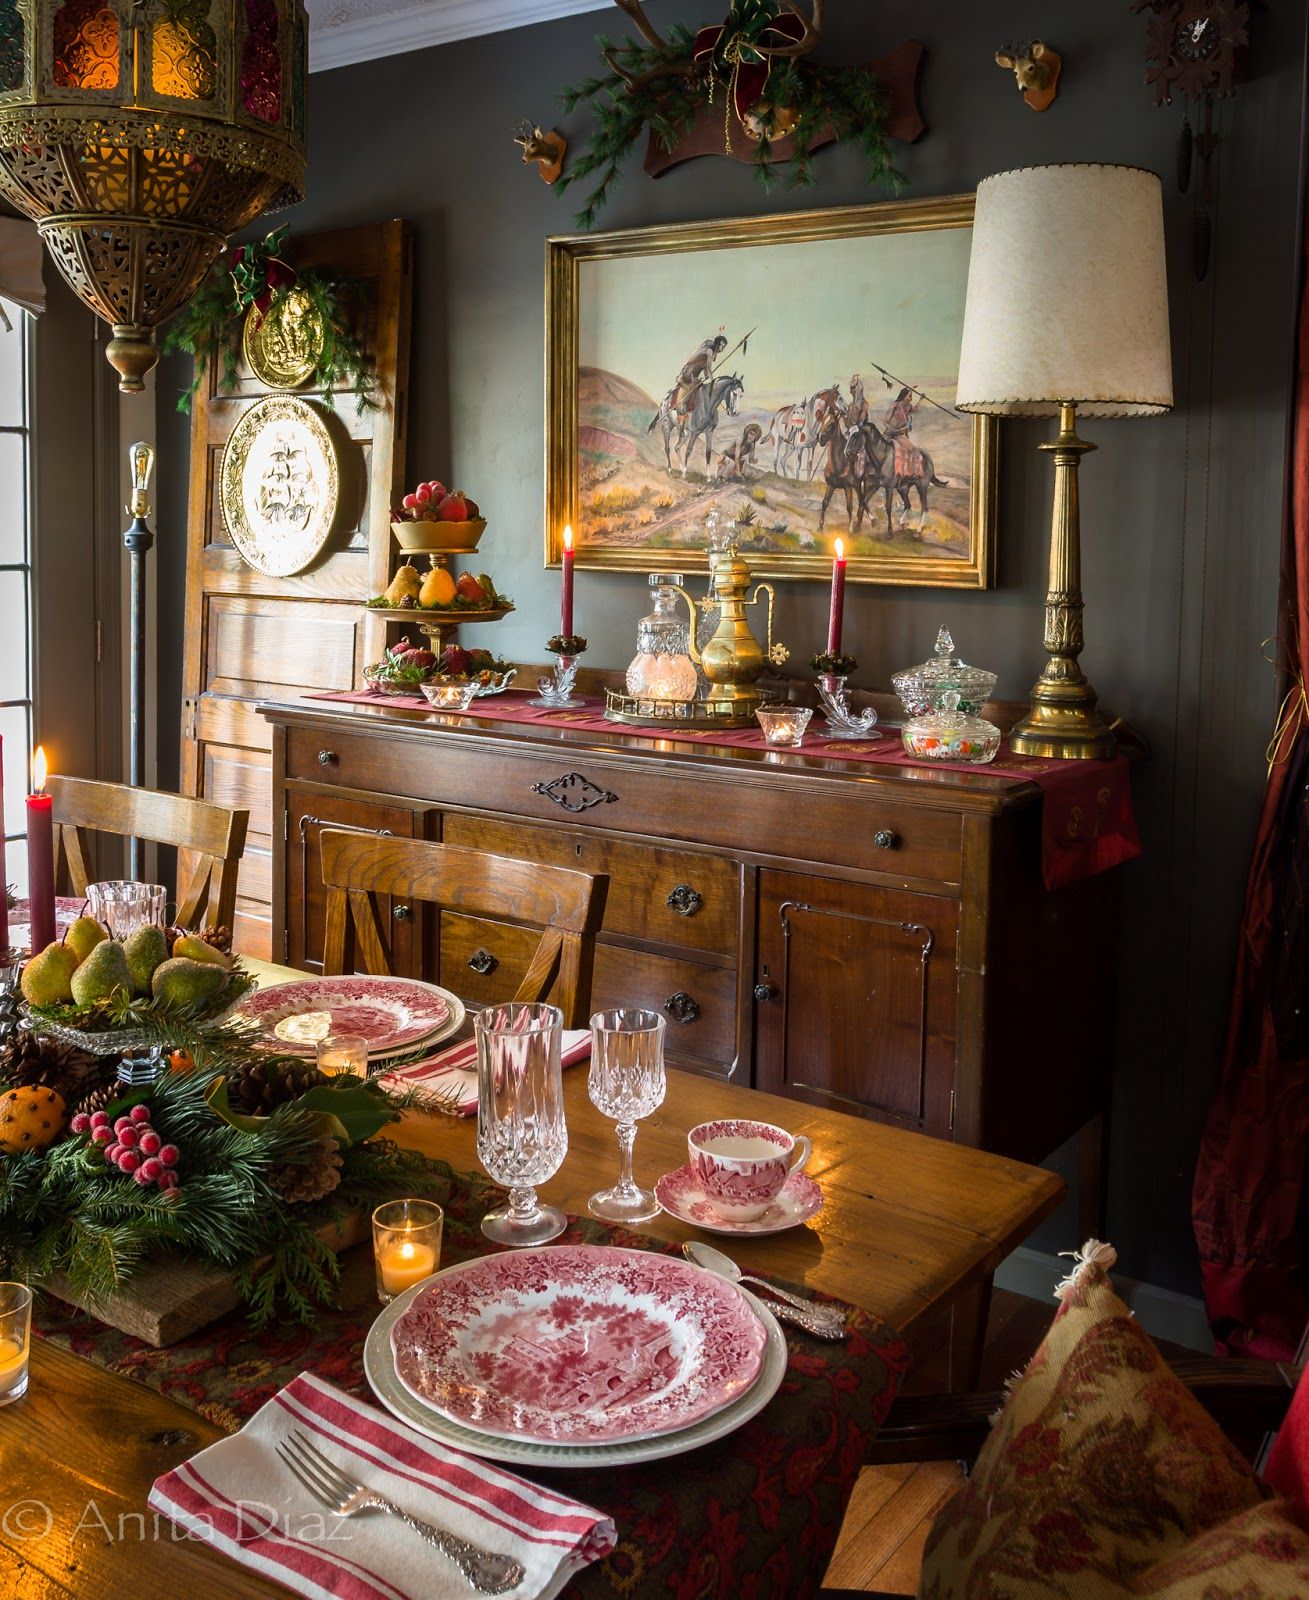 Cozy Christmas home (With images) Christmas dining room